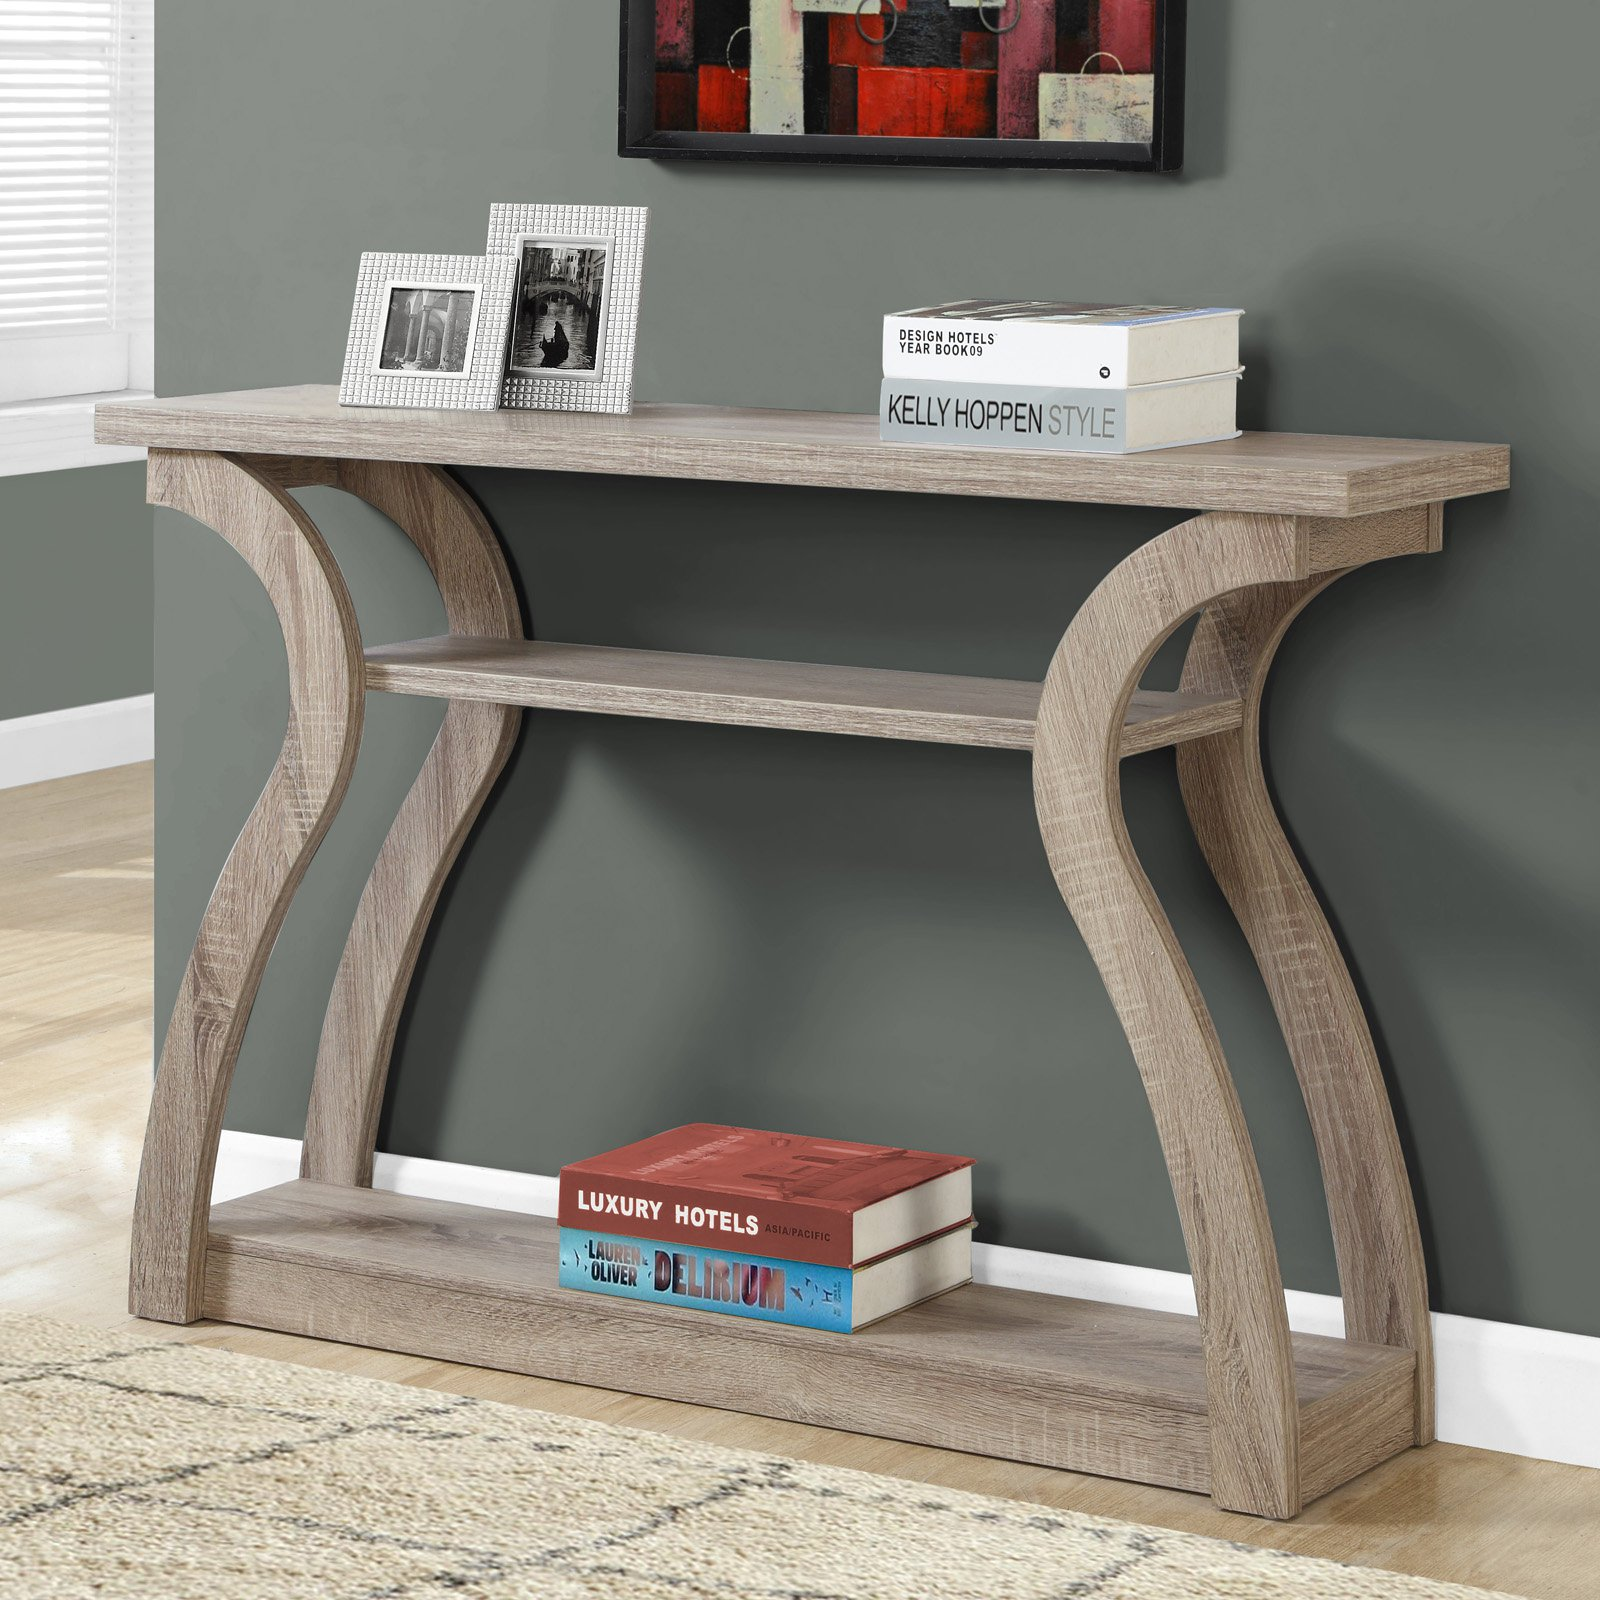 Monarch accent table 47l cappuccino hall console walmart com